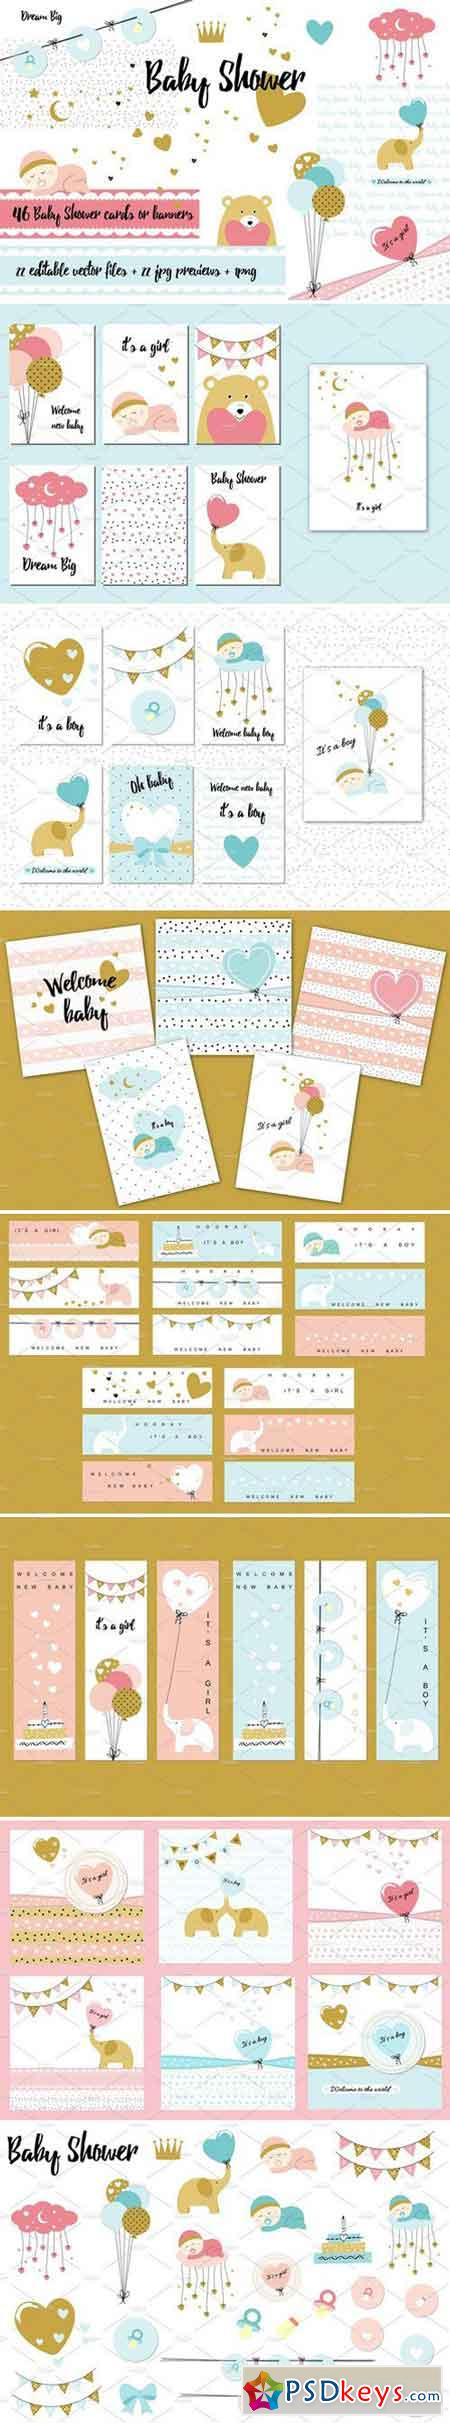 Baby Shower - cards and banners 1597512